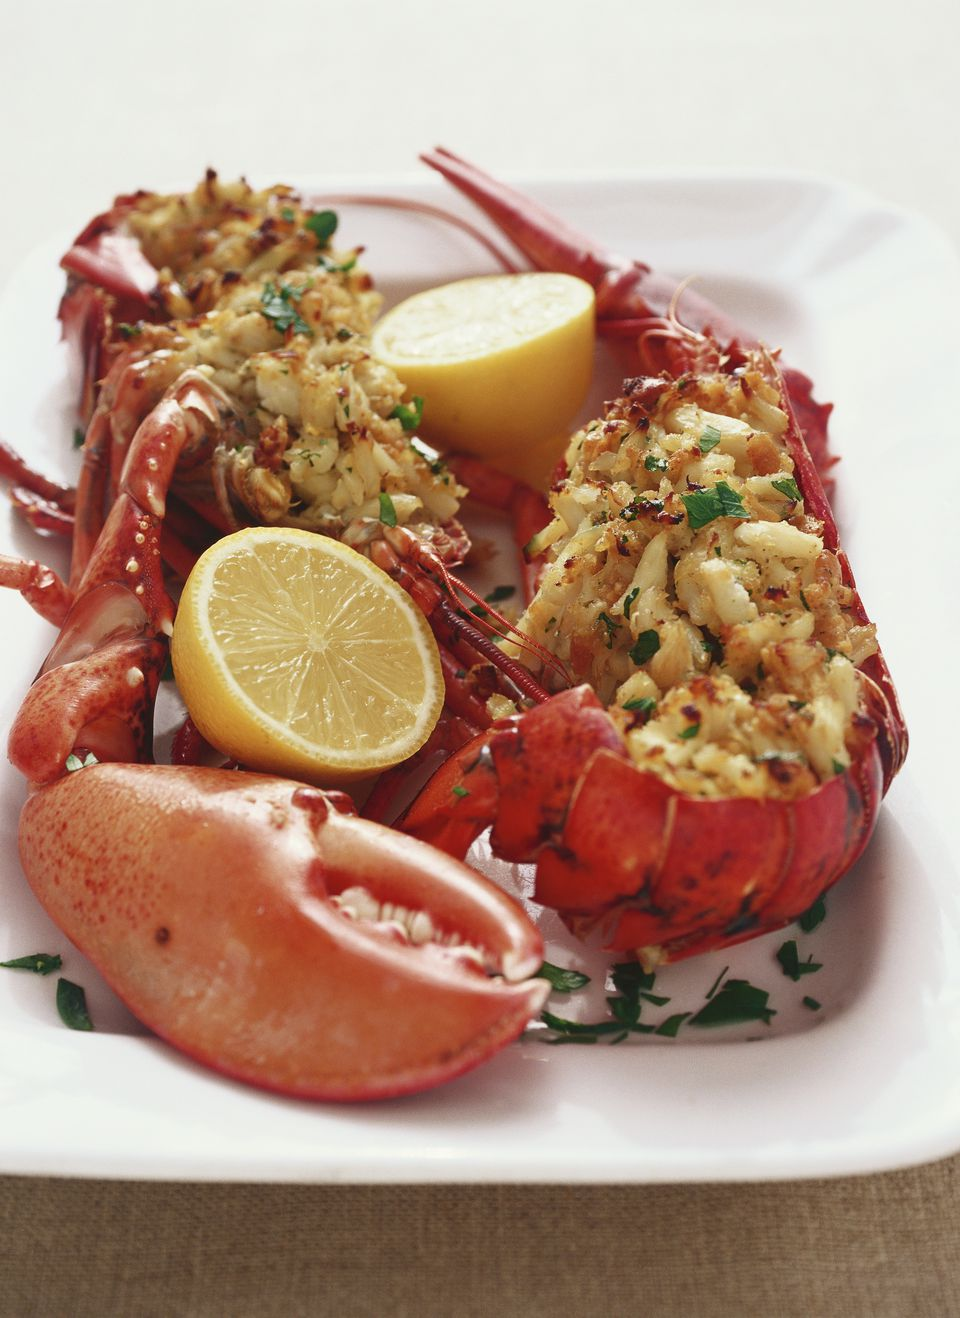 Easy and Elegant Baked Stuffed Lobster Recipe